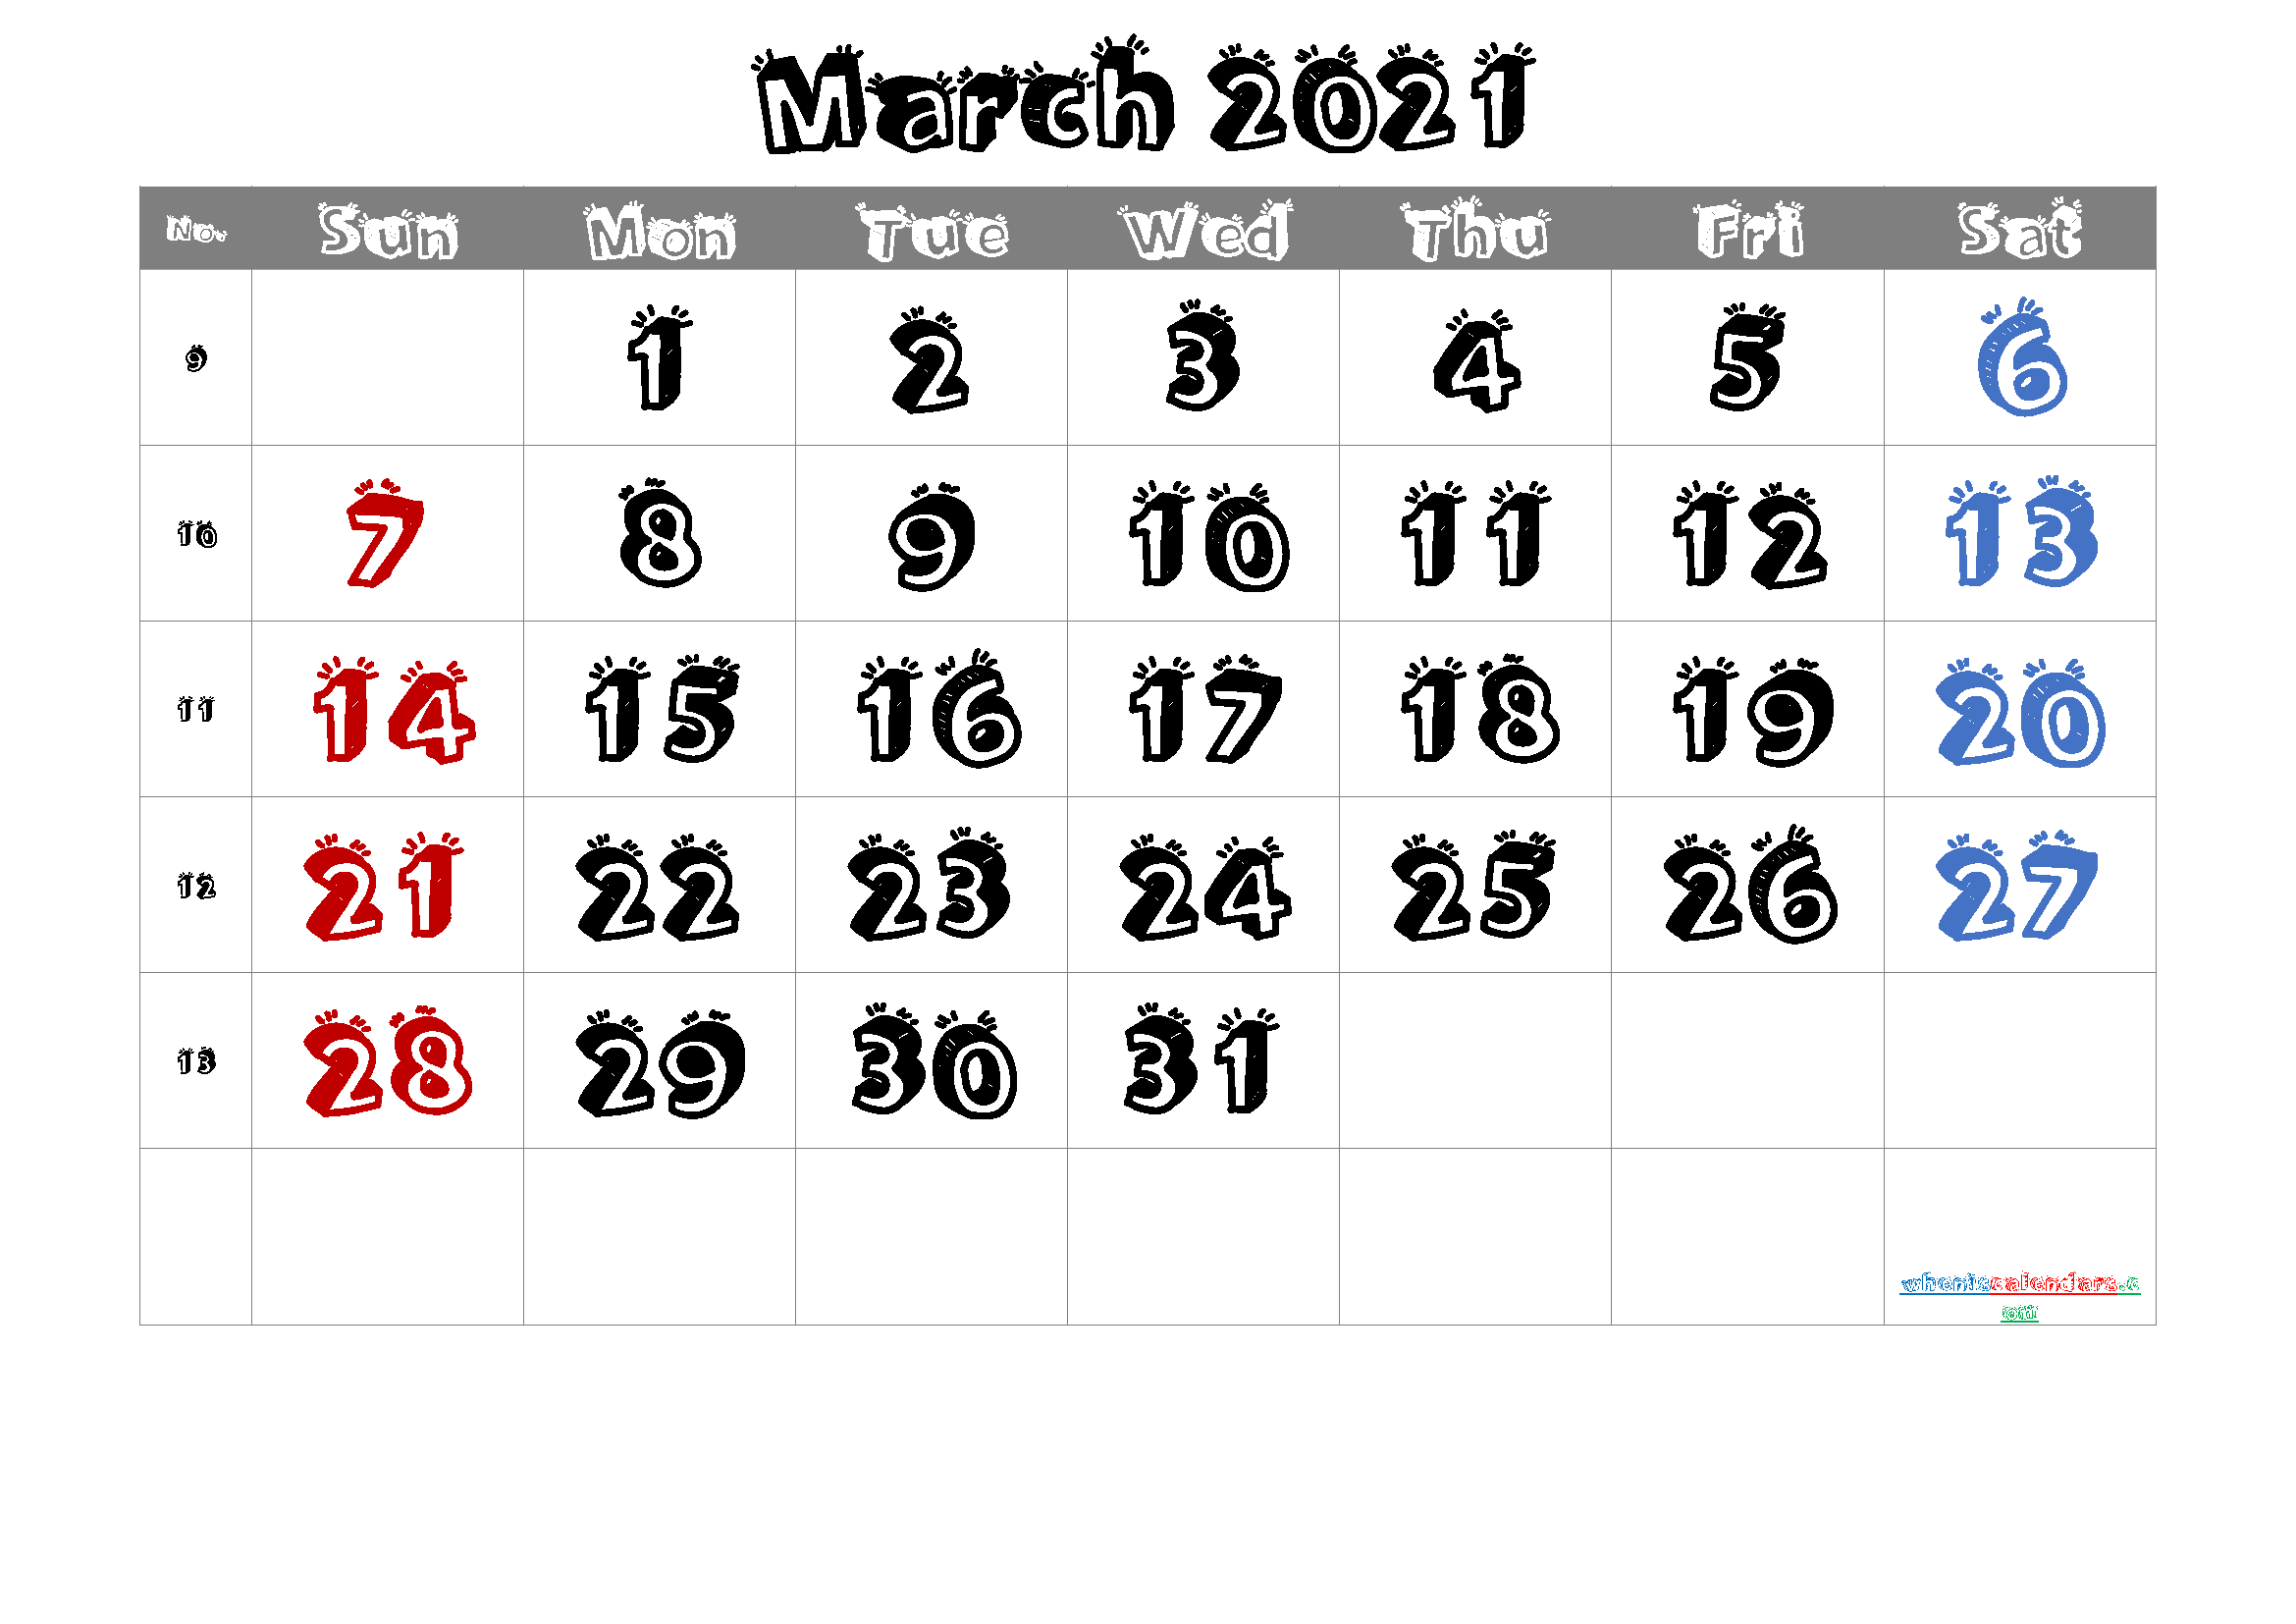 Free Printable March 2021 Calendar (Premium) pertaining to March 2021 Calendar Images